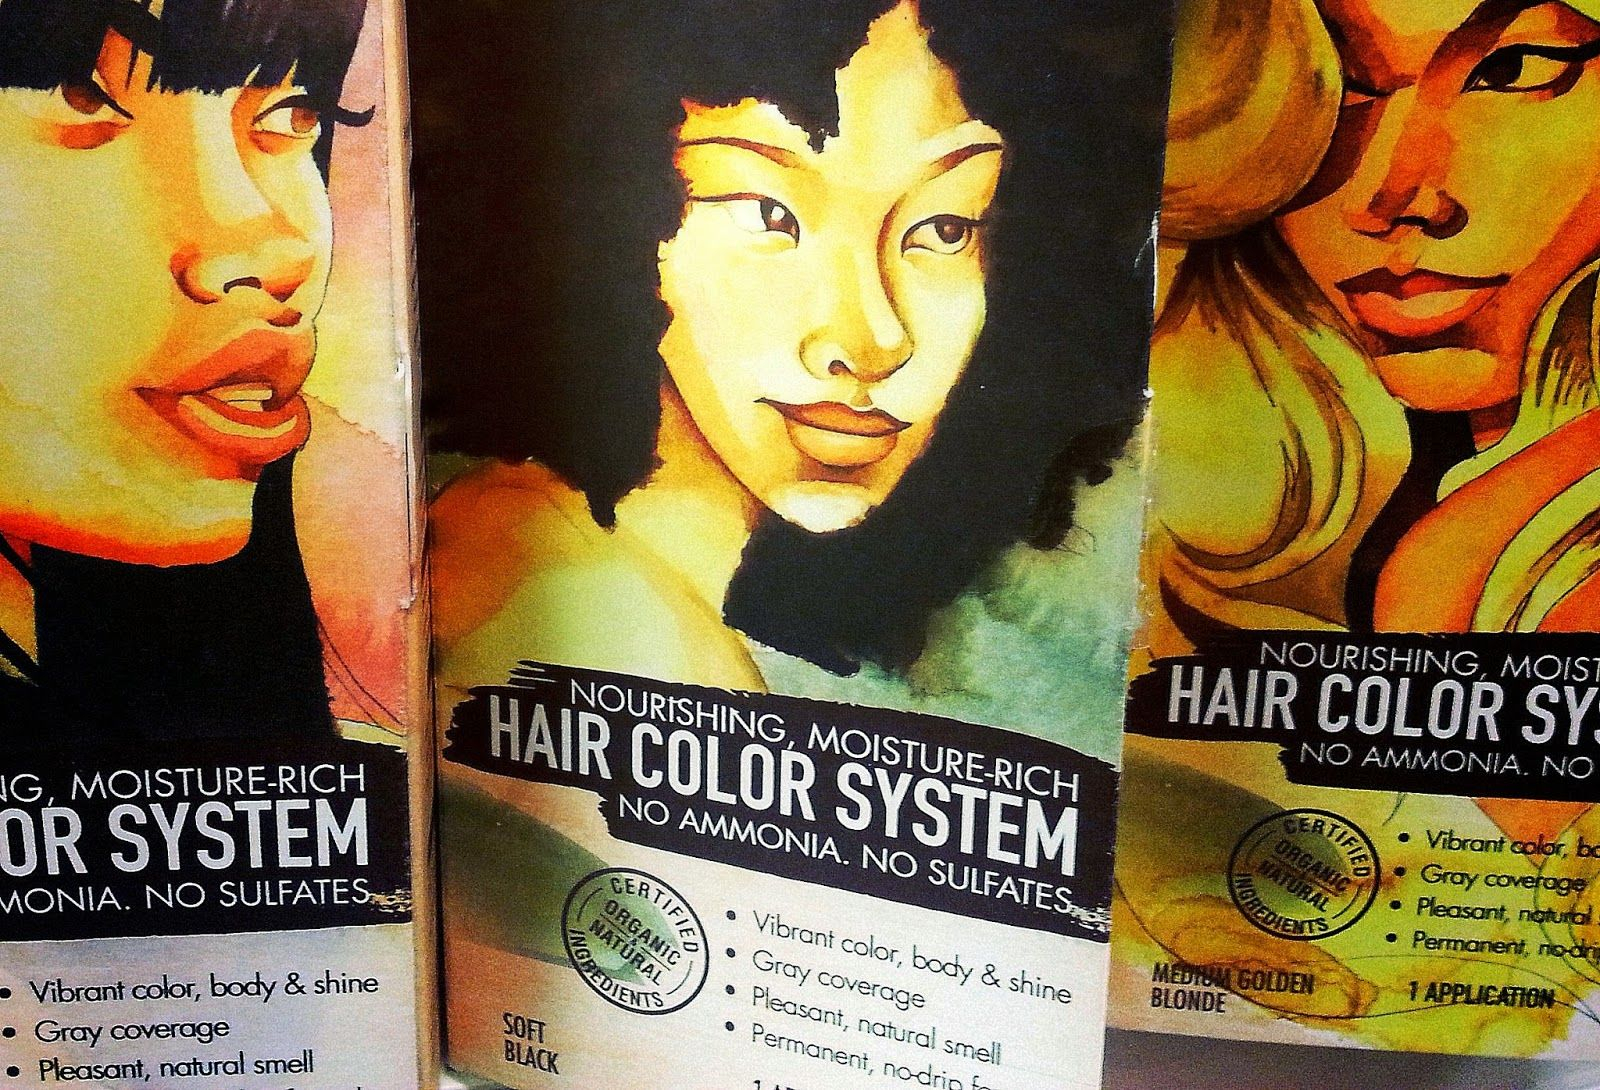 Shea Moisture Hair Color System So What Youre Telling Me Is I Can